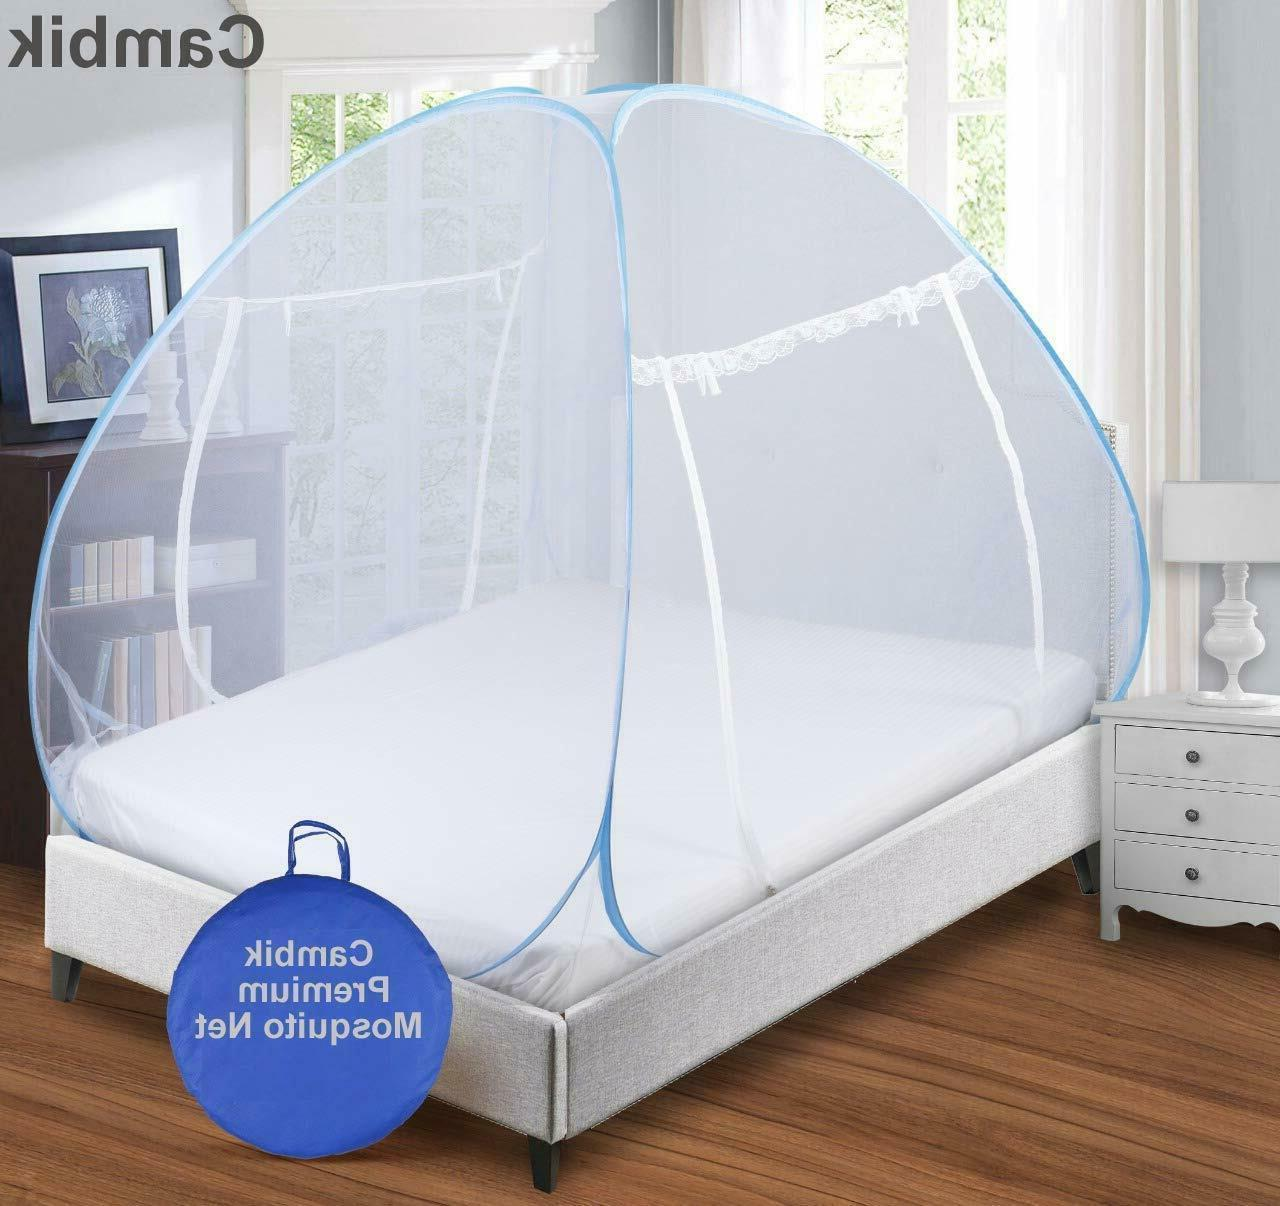 foldable double bed size mosquito net two